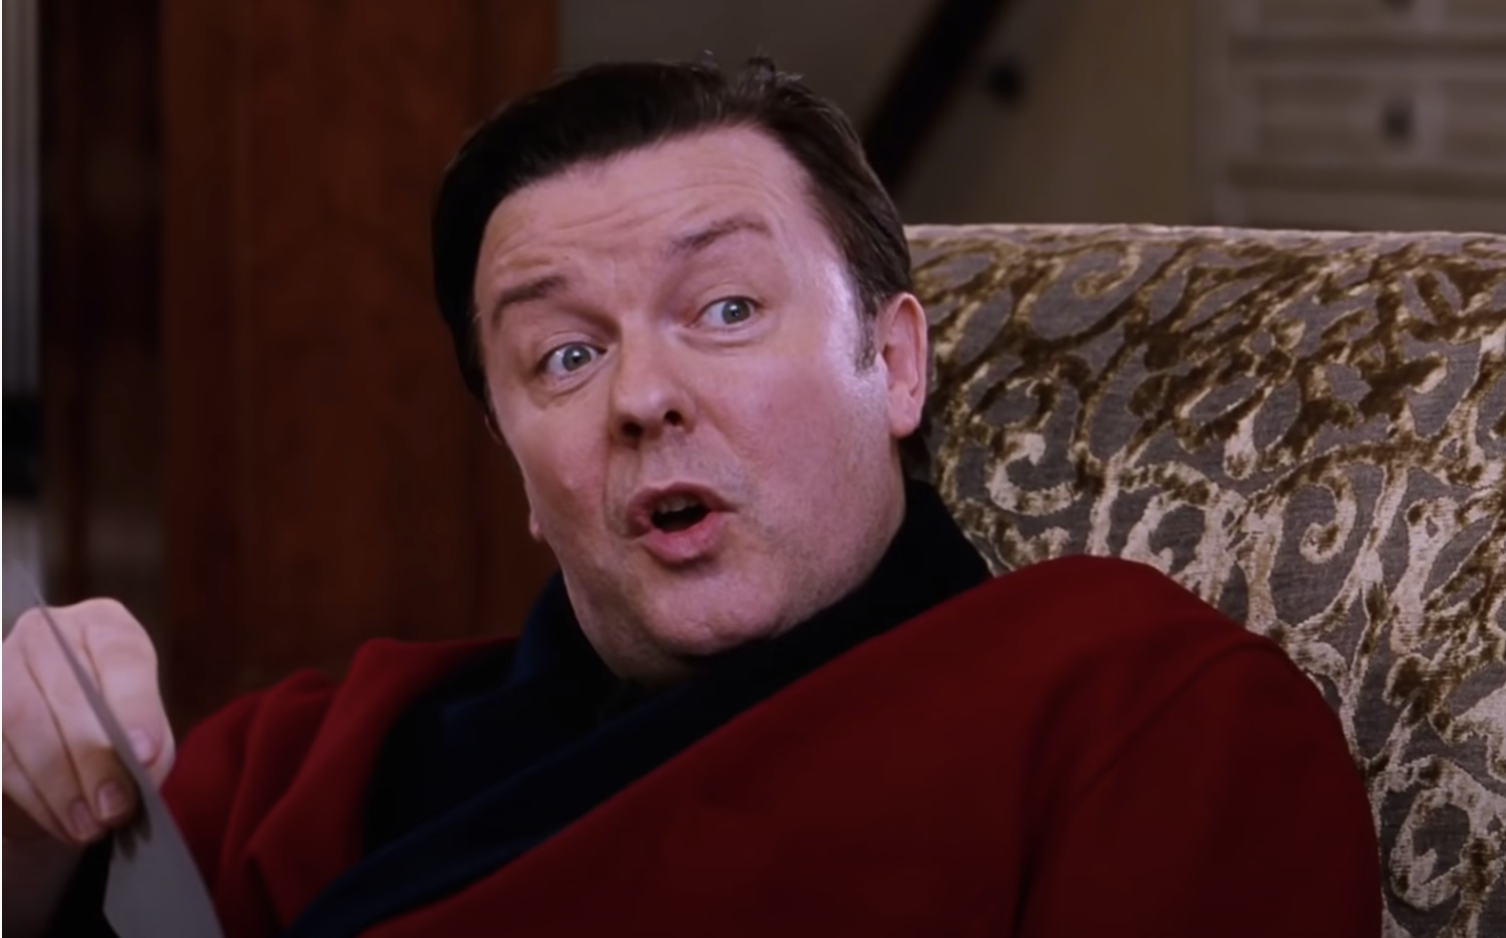 Ricky Gervais in the film